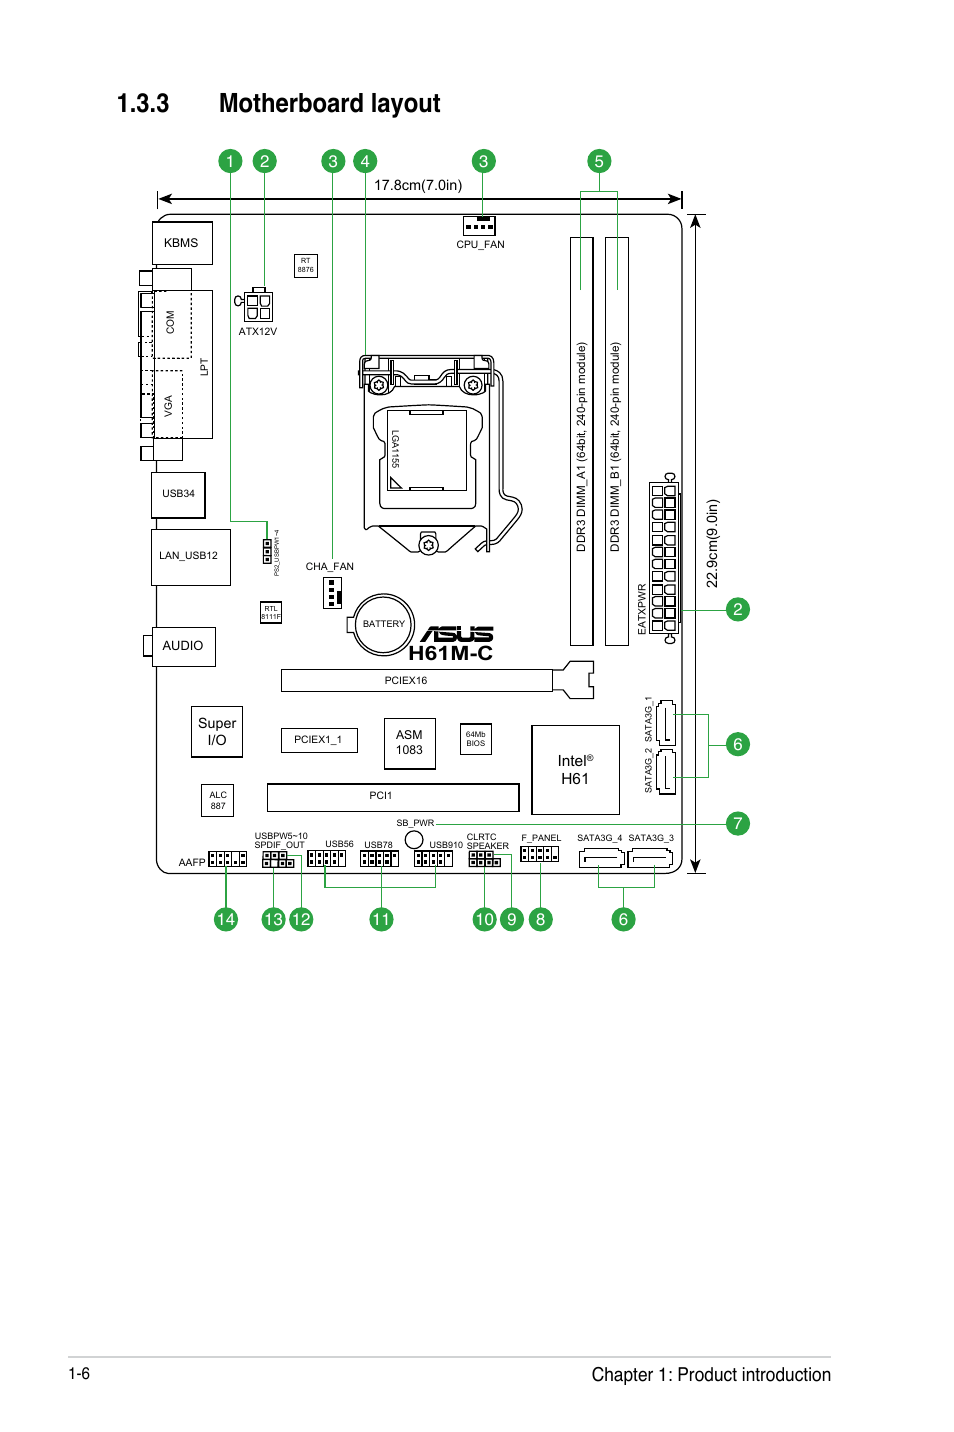 3 motherboard layout, H61m-c, Chapter 1: product